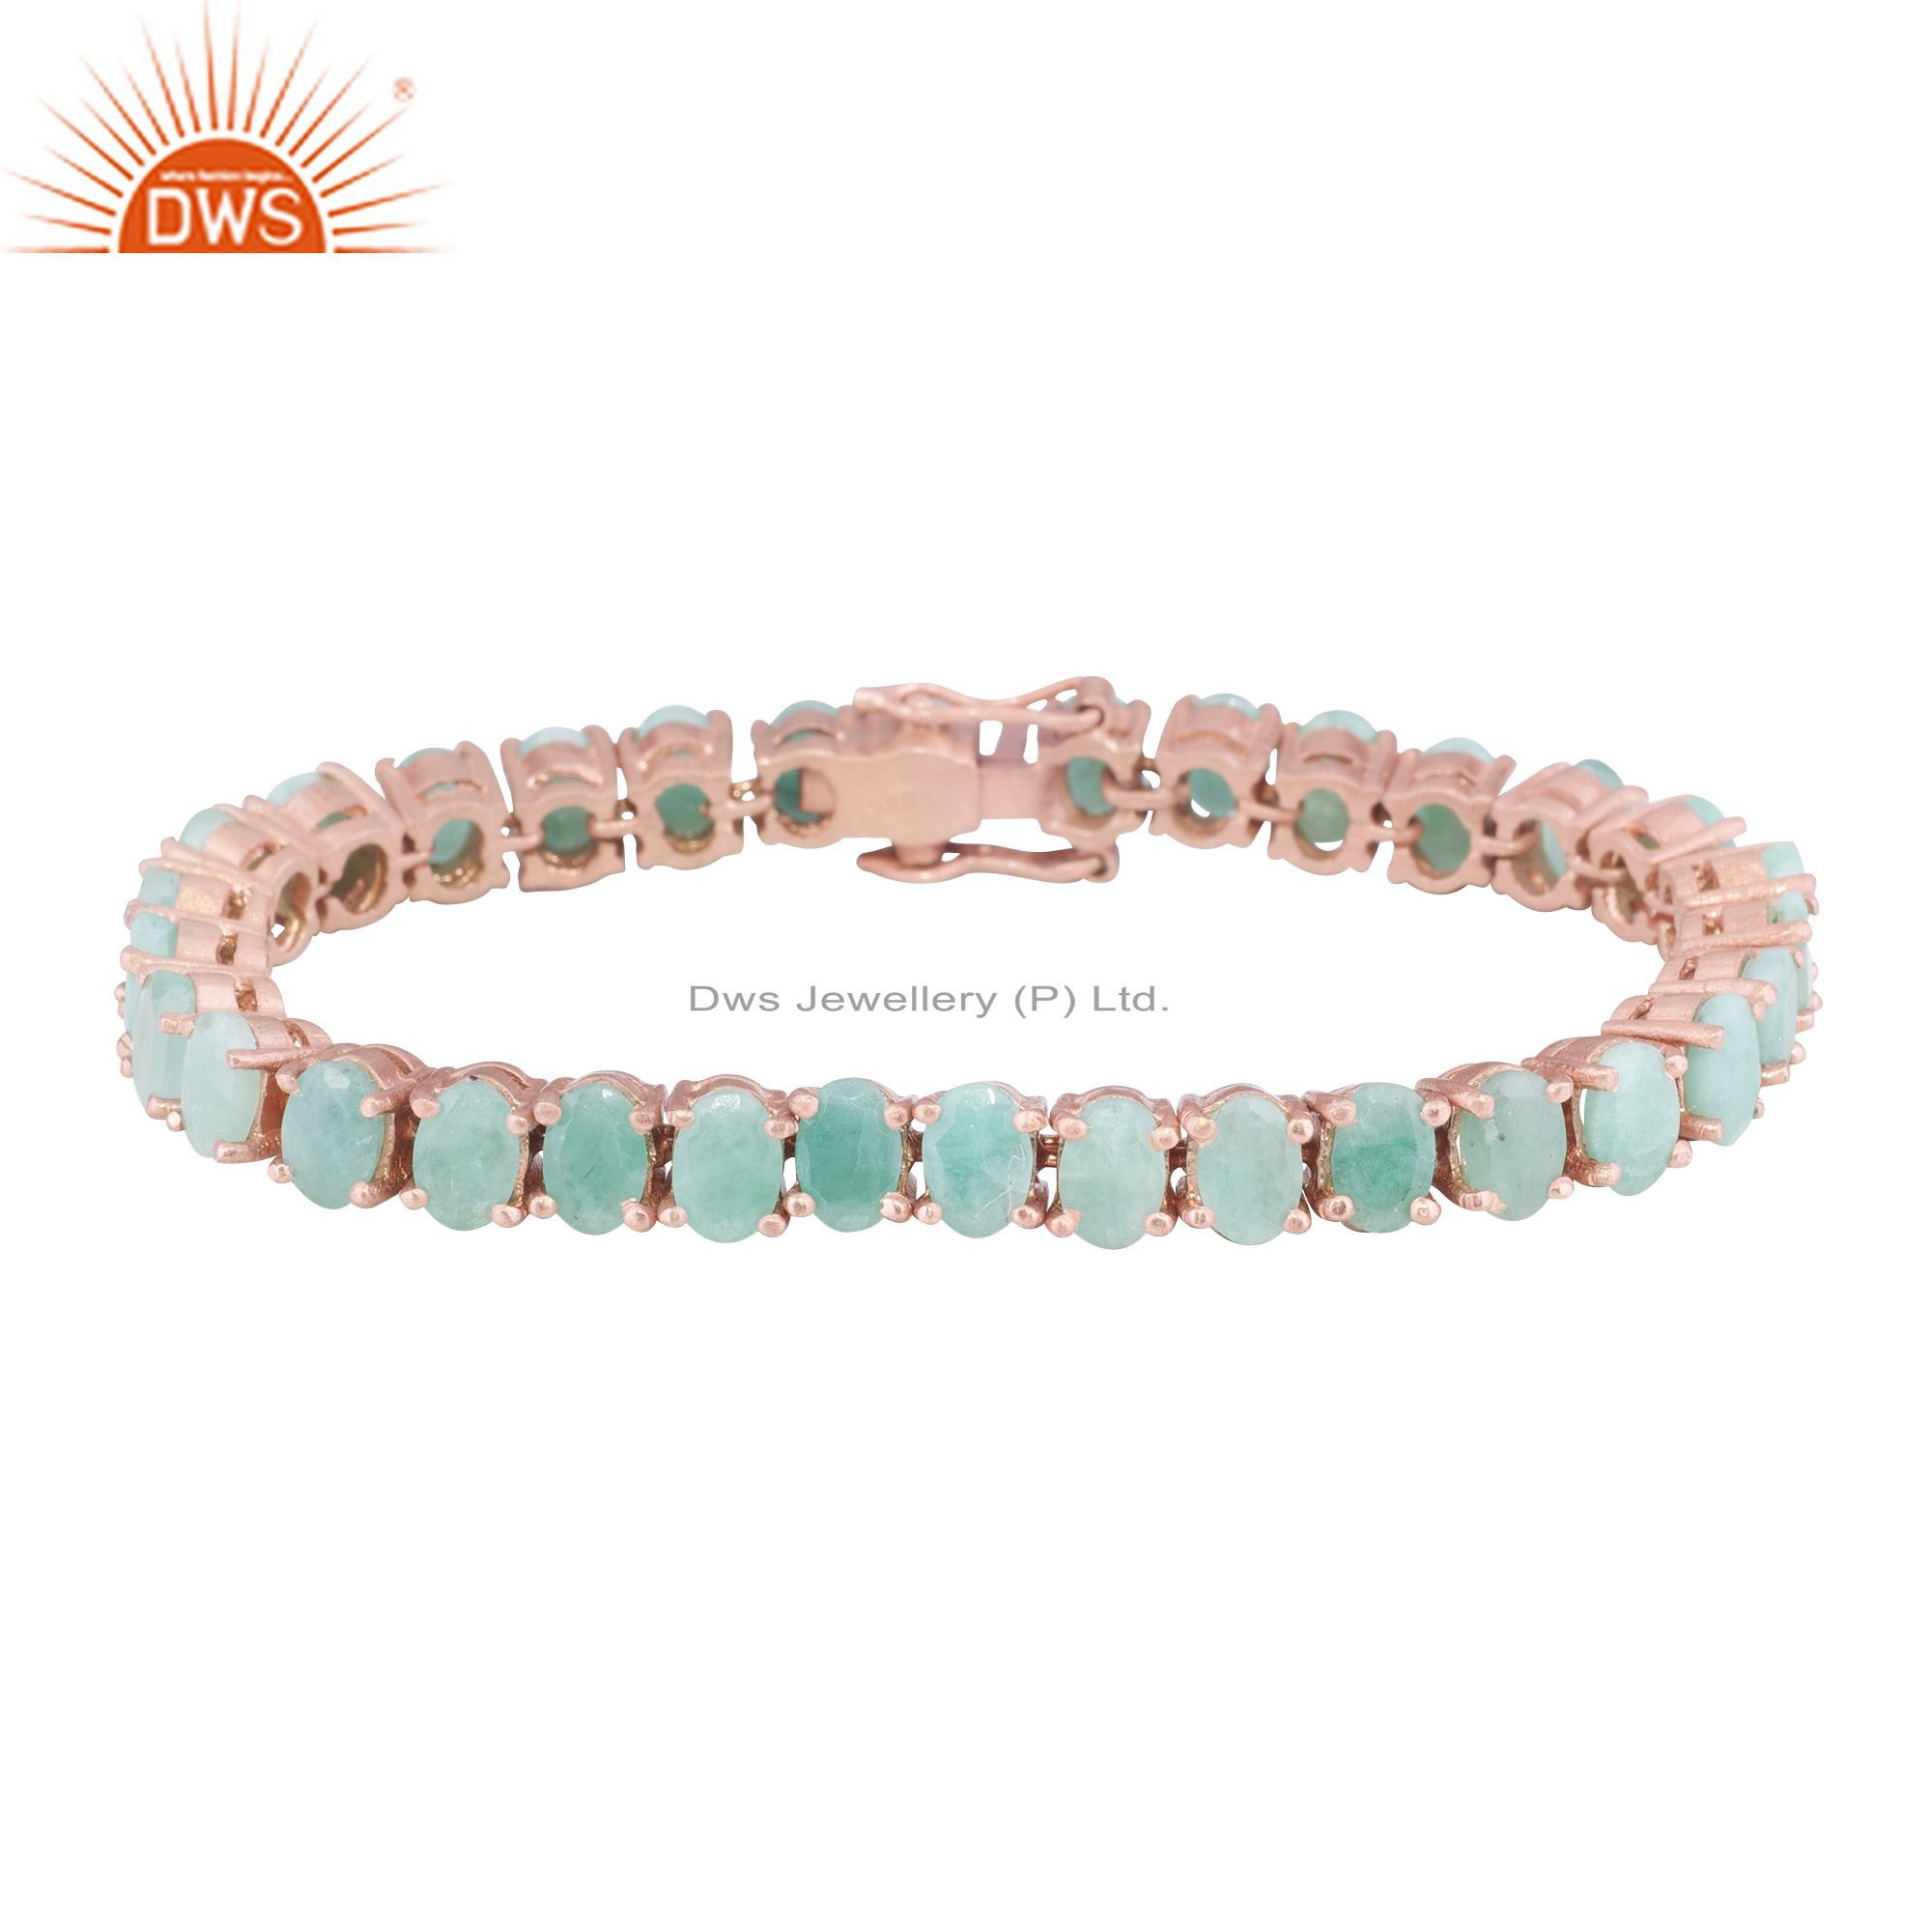 14K Rose Gold Plated Sterling Silver Emerald Gemstone Tennis Bracelet Jewelry